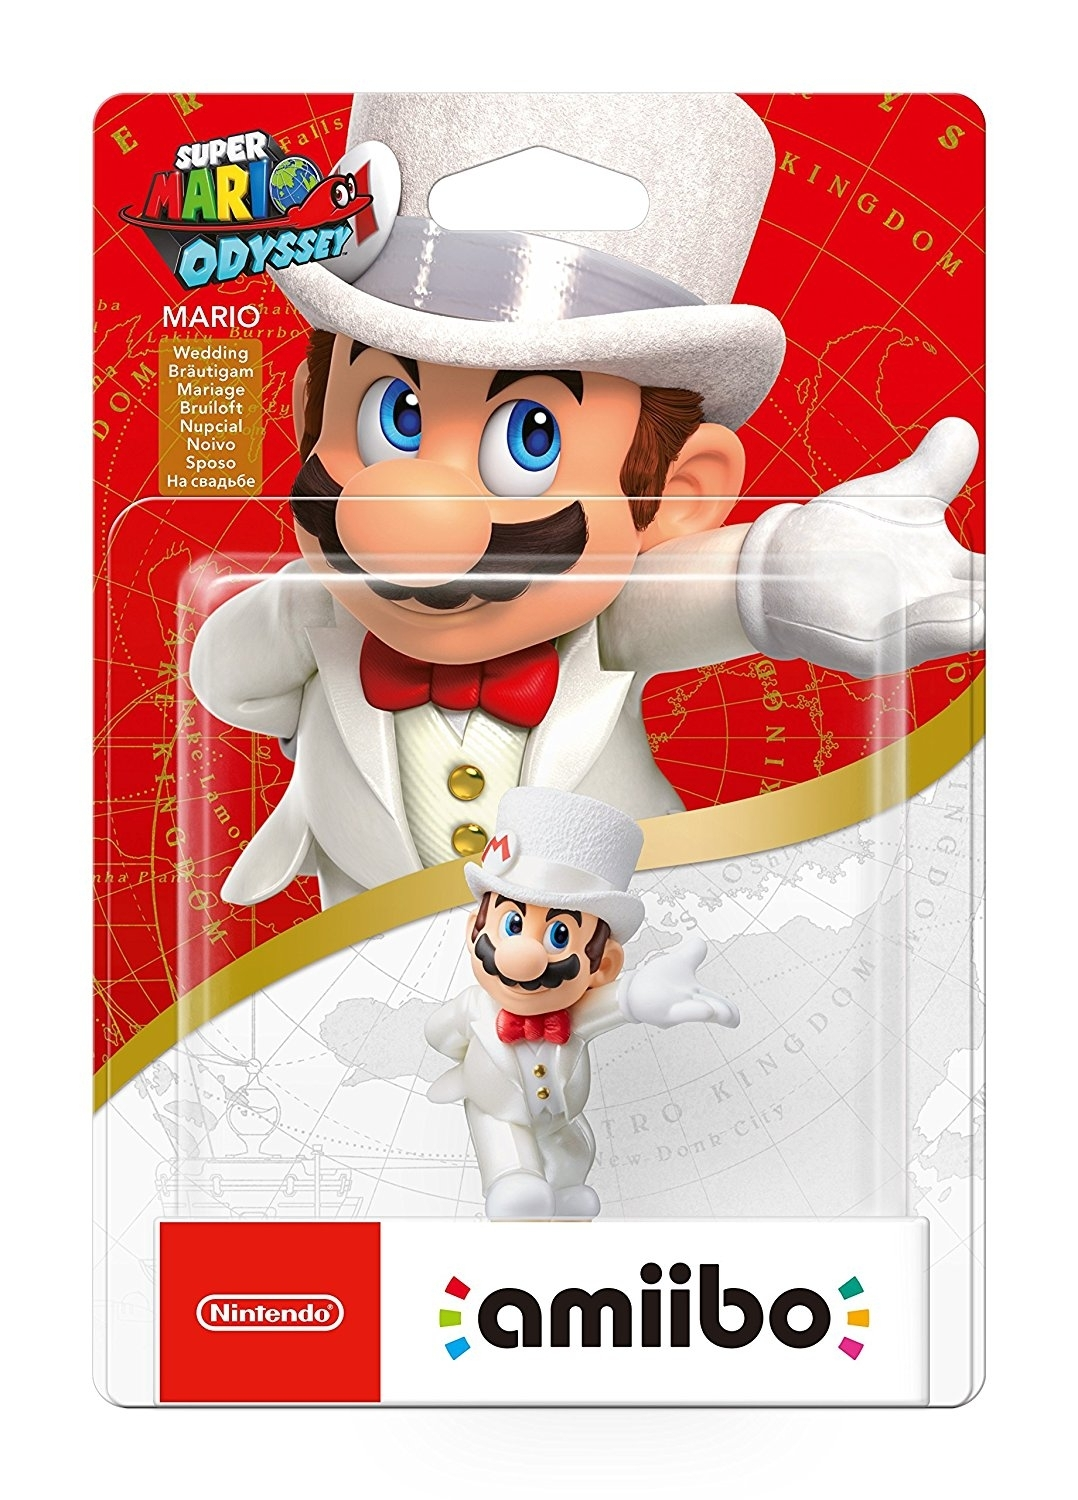 Figurka Amiibo Wedding Mario Super Mario Odyssey (WiiU, 3DS,2DS, Nintendo Switch)